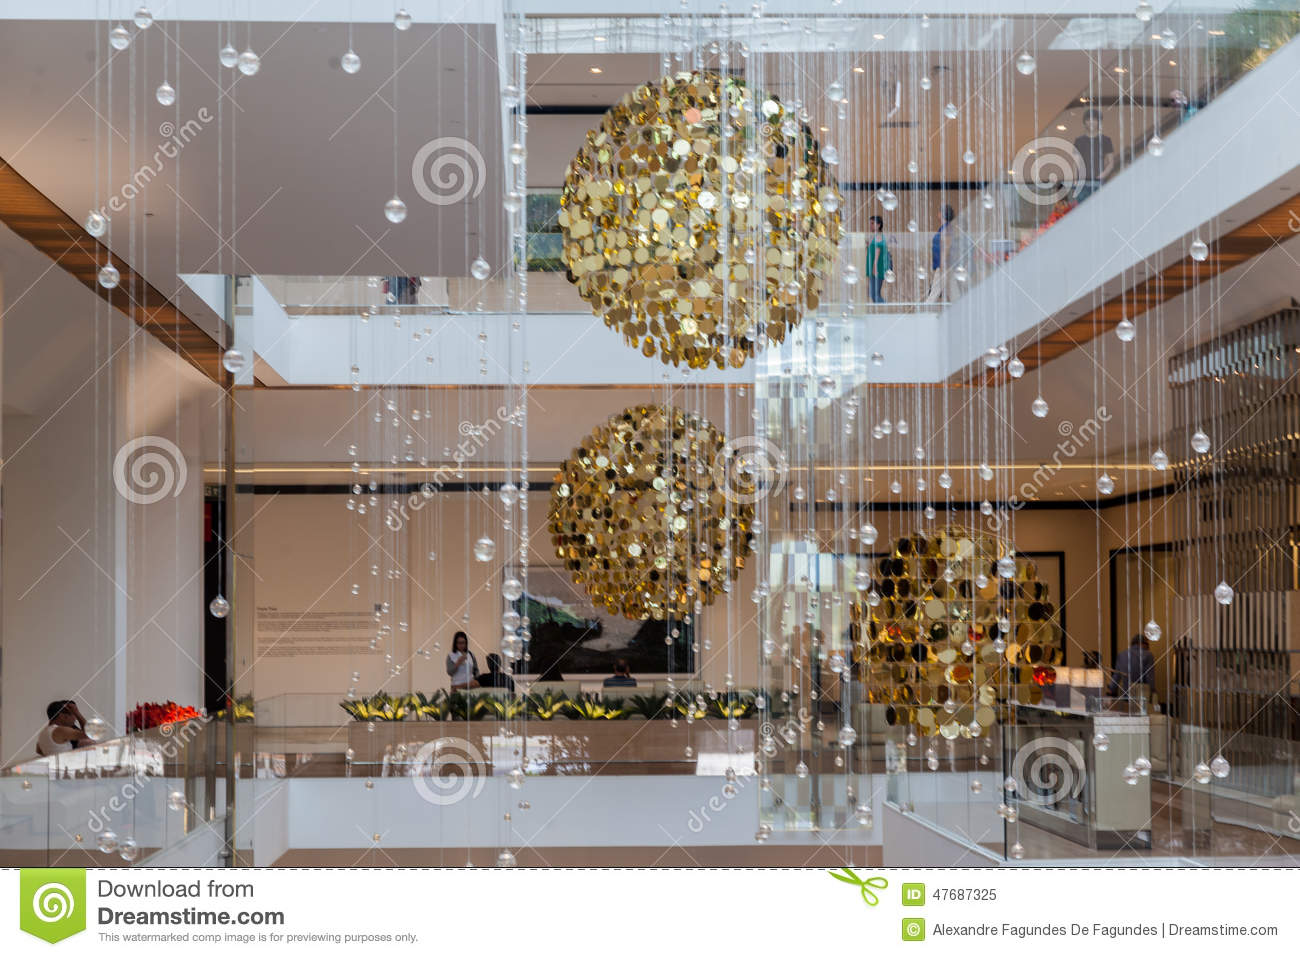 Christmas decor to hang from ceiling - Brazil Bublles Ceiling Christmas Decoration Golden Hanging